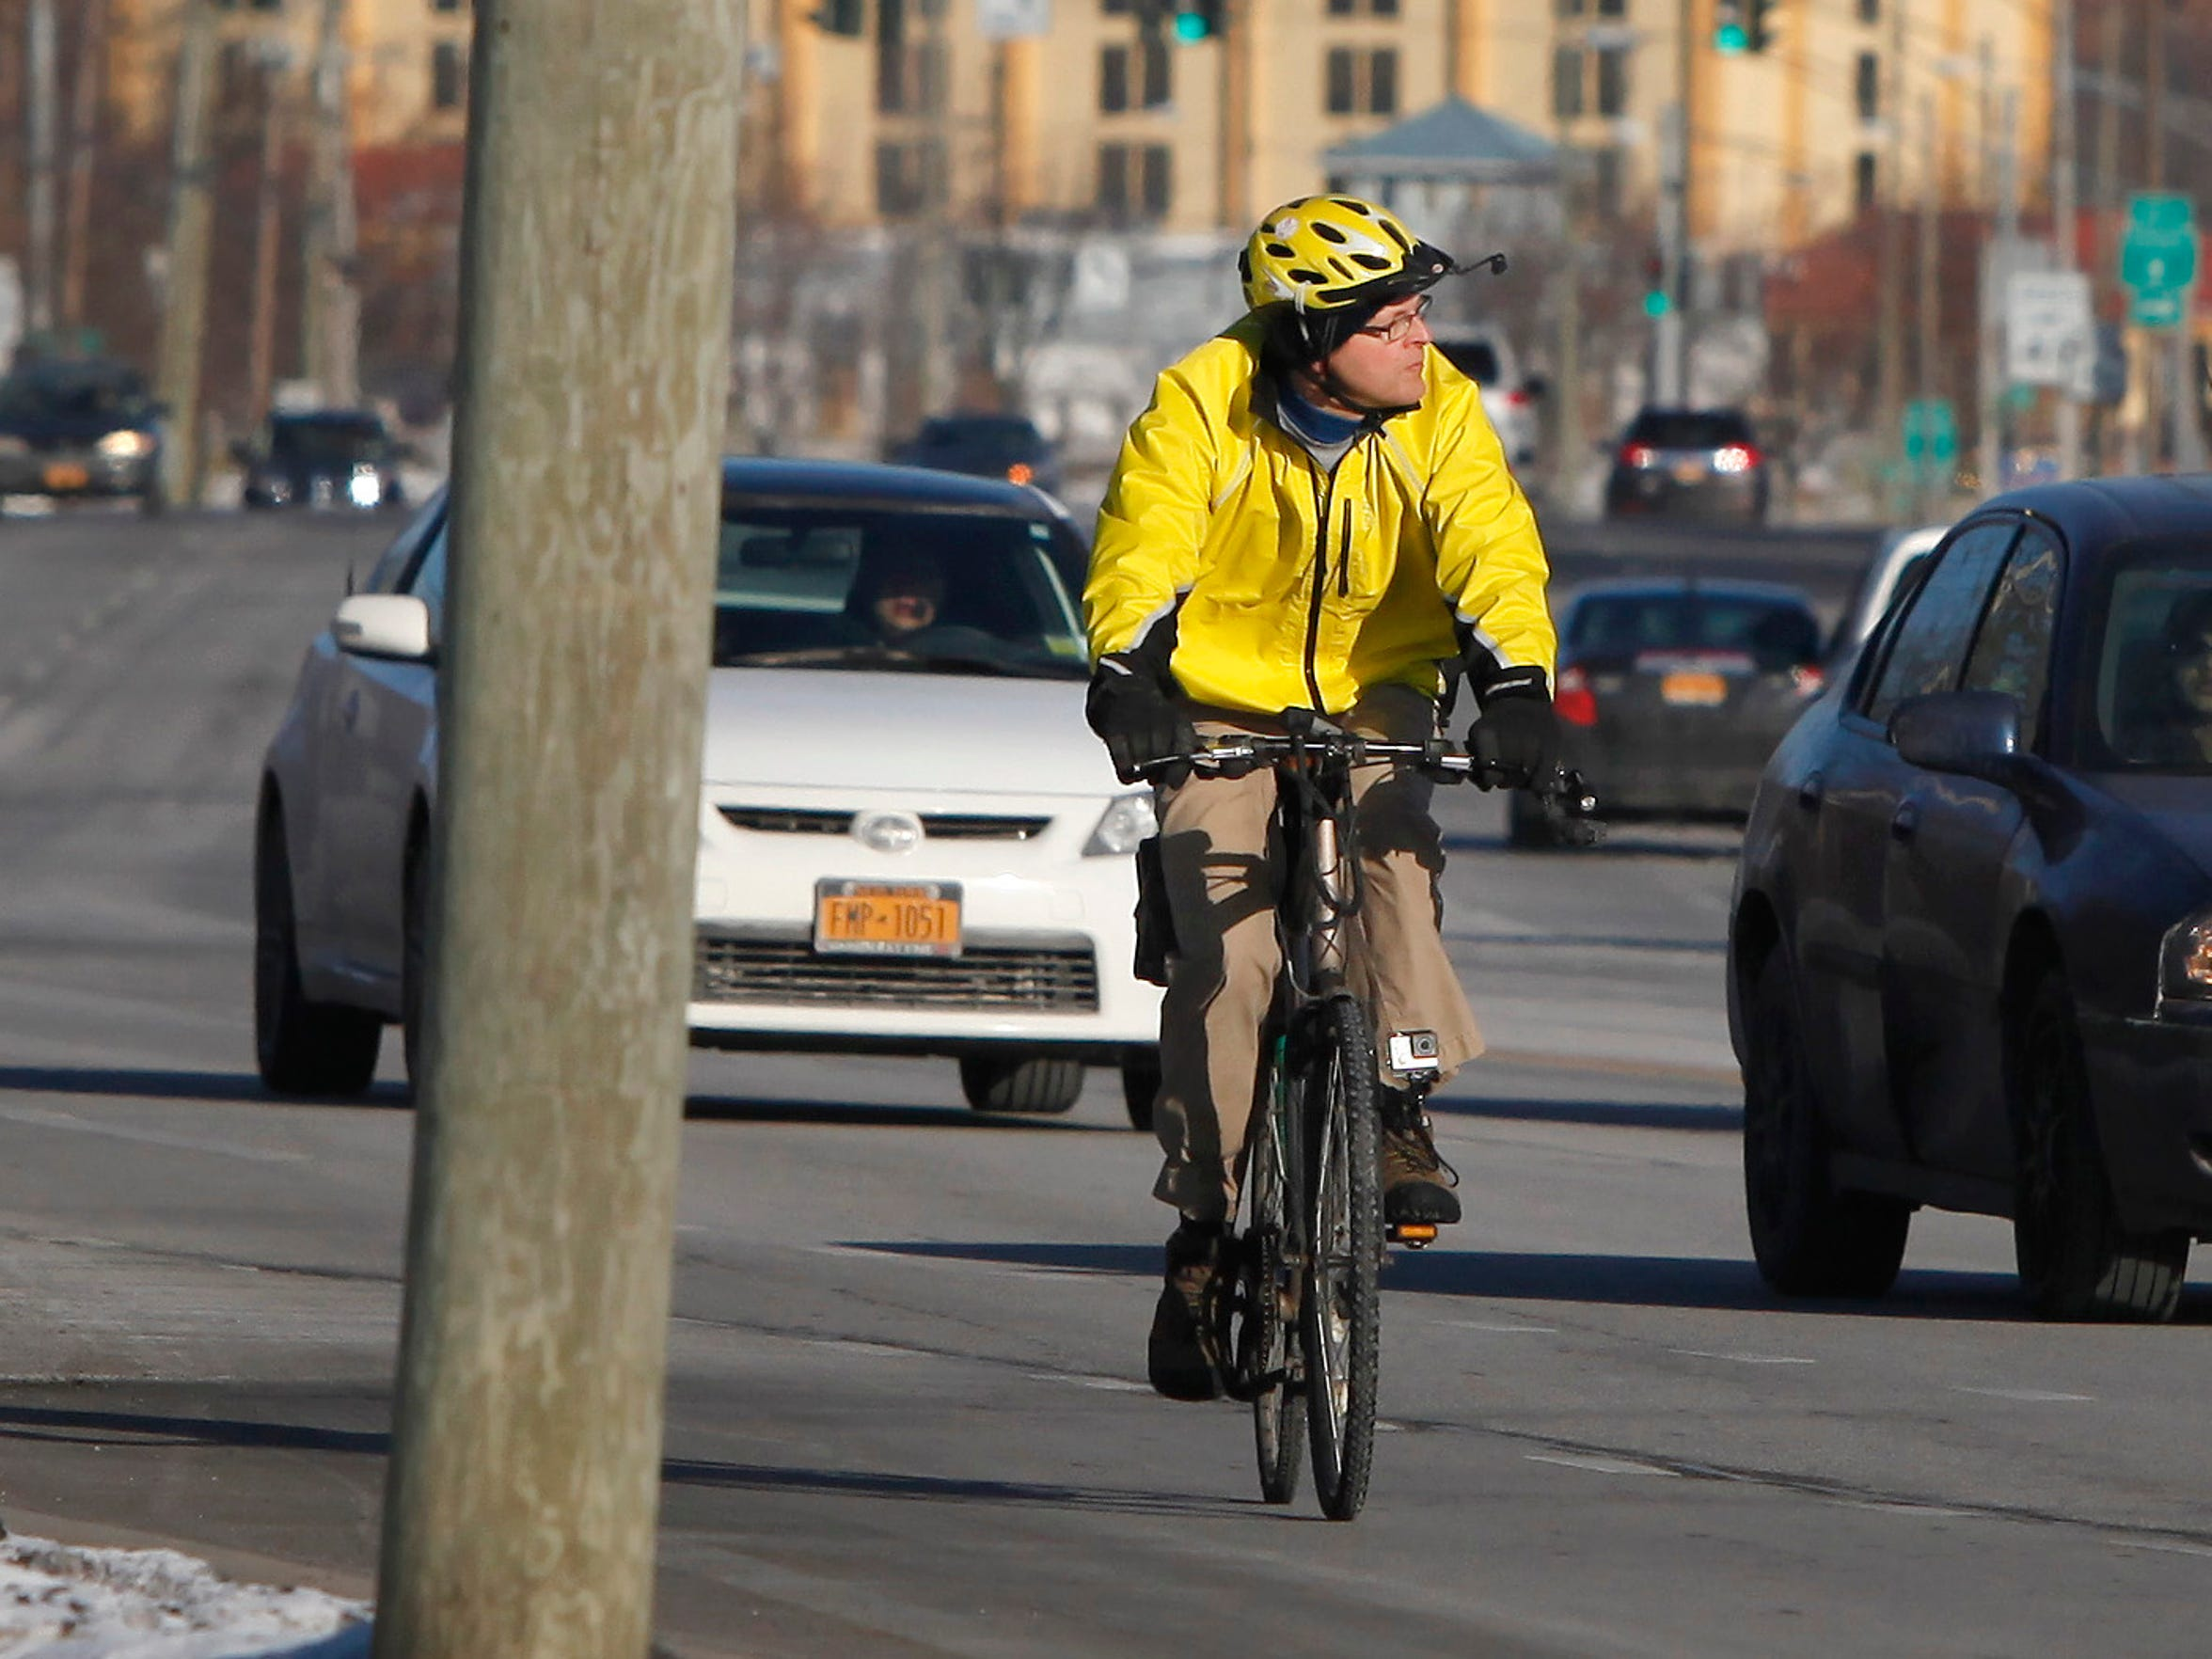 Rochester resident Scott Wagner rides his bike to work in the cold along East Henrietta Road. Wagner commutes by bike year round.